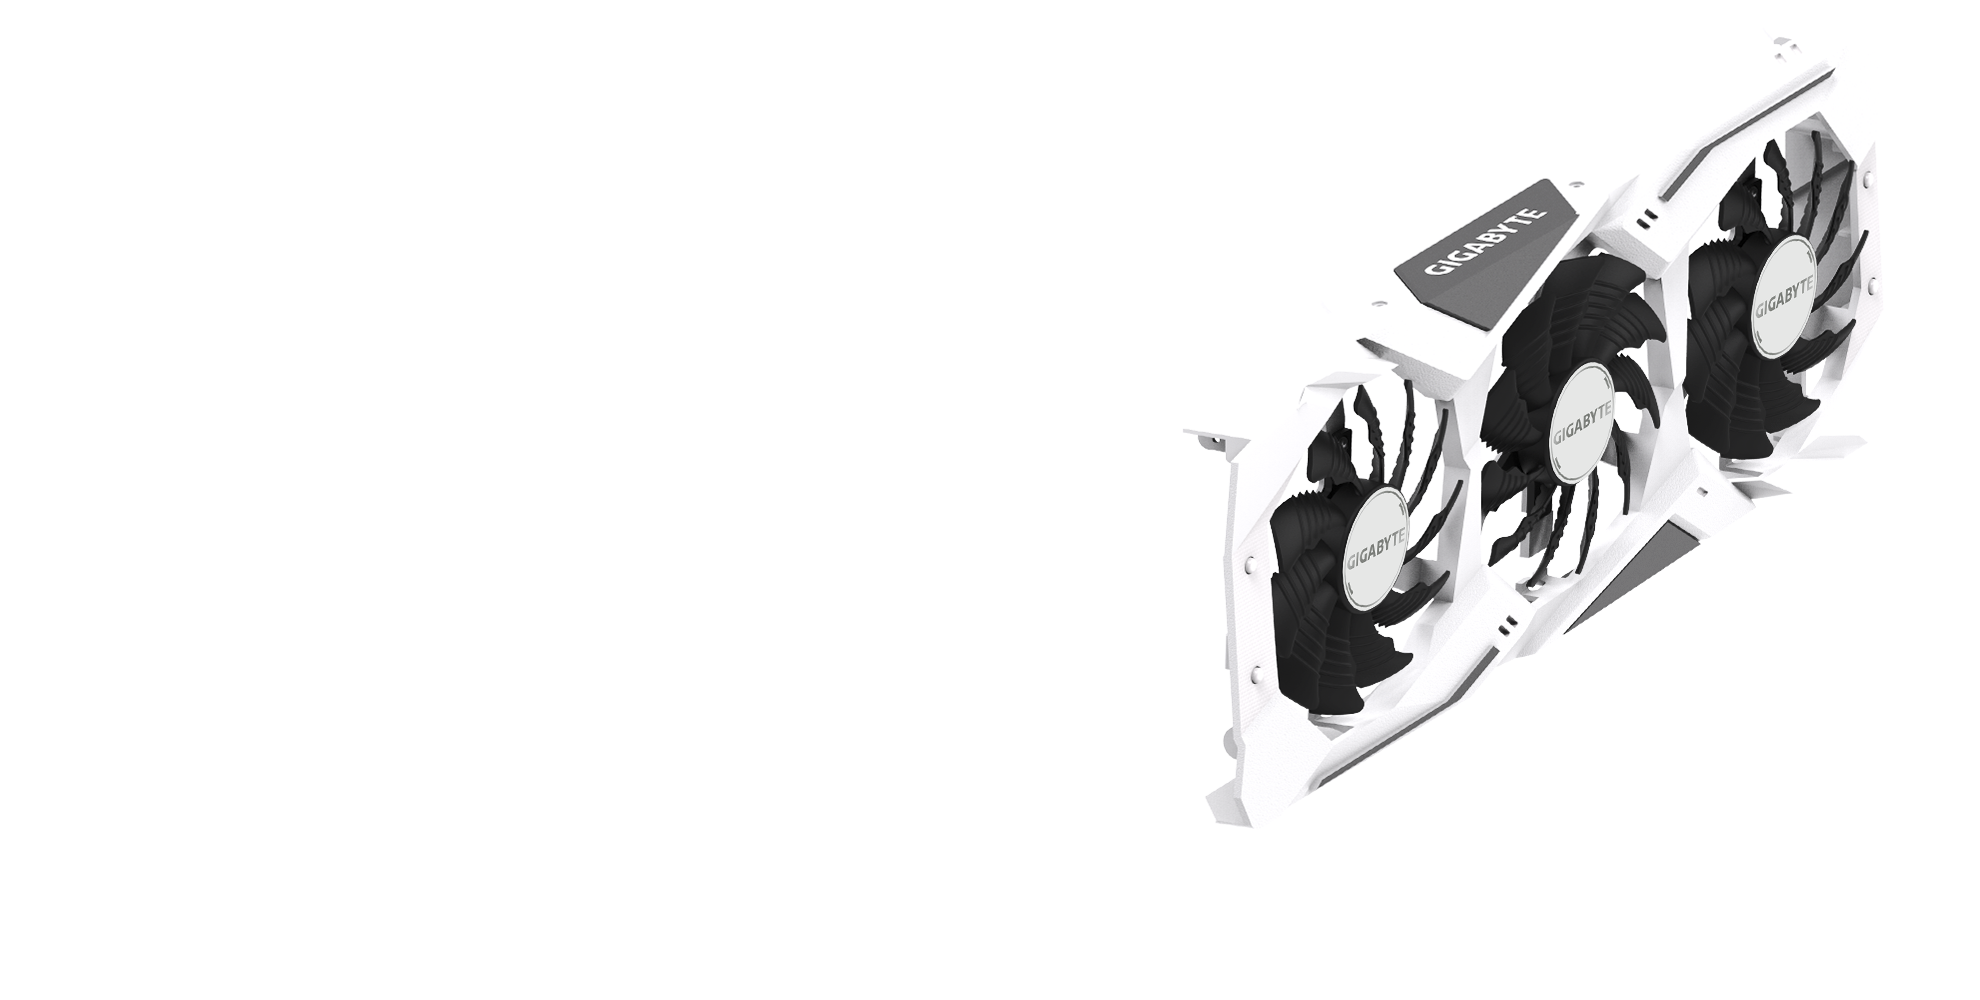 GeForce RTX™ 2070 GAMING OC WHITE 8G | Graphics Card - GIGABYTE U S A